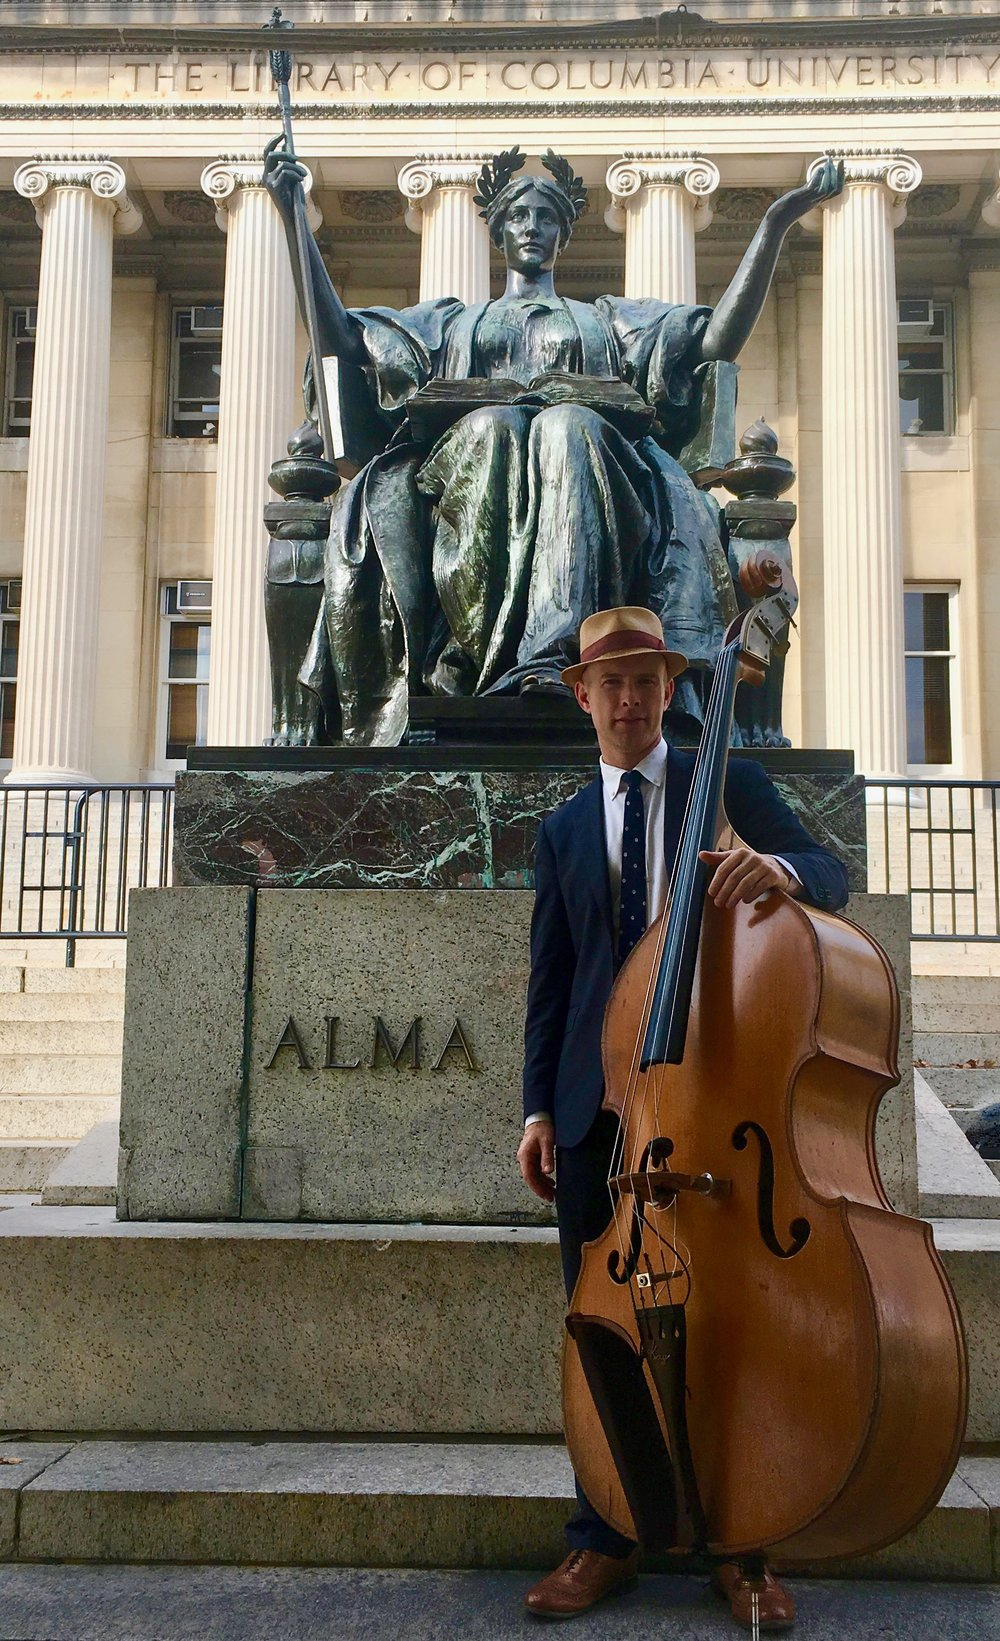 Peter and the Master Keys play blues and jazz for an event for incoming graduate students at Columbia University.